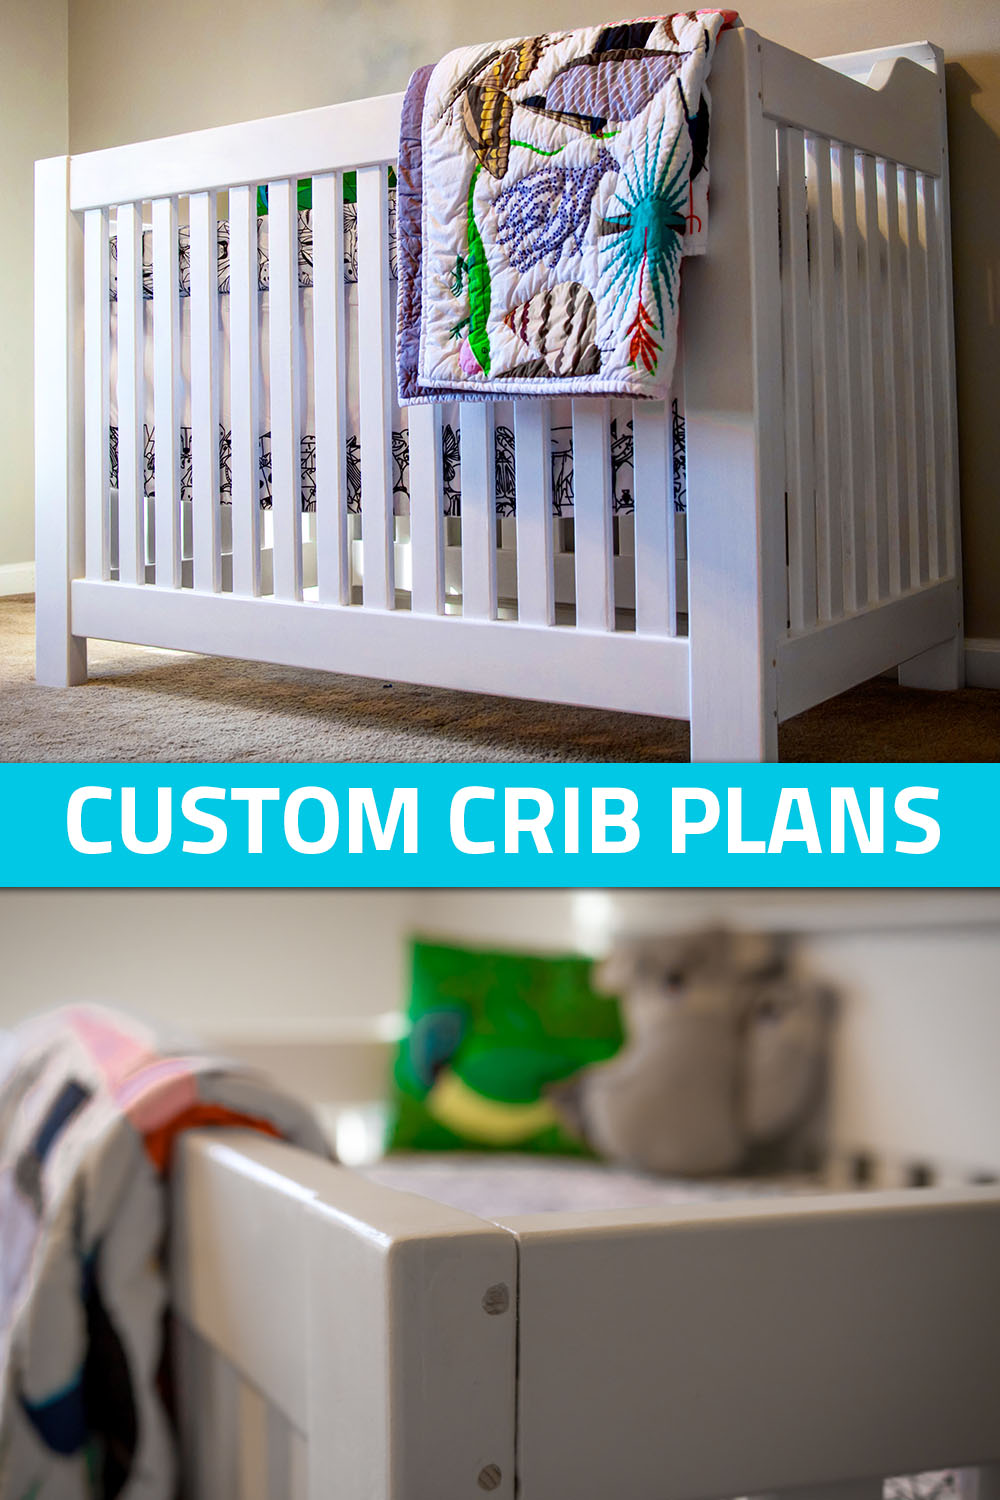 Build your own crib with these full plans, including cut lists, diagrams and dimensions